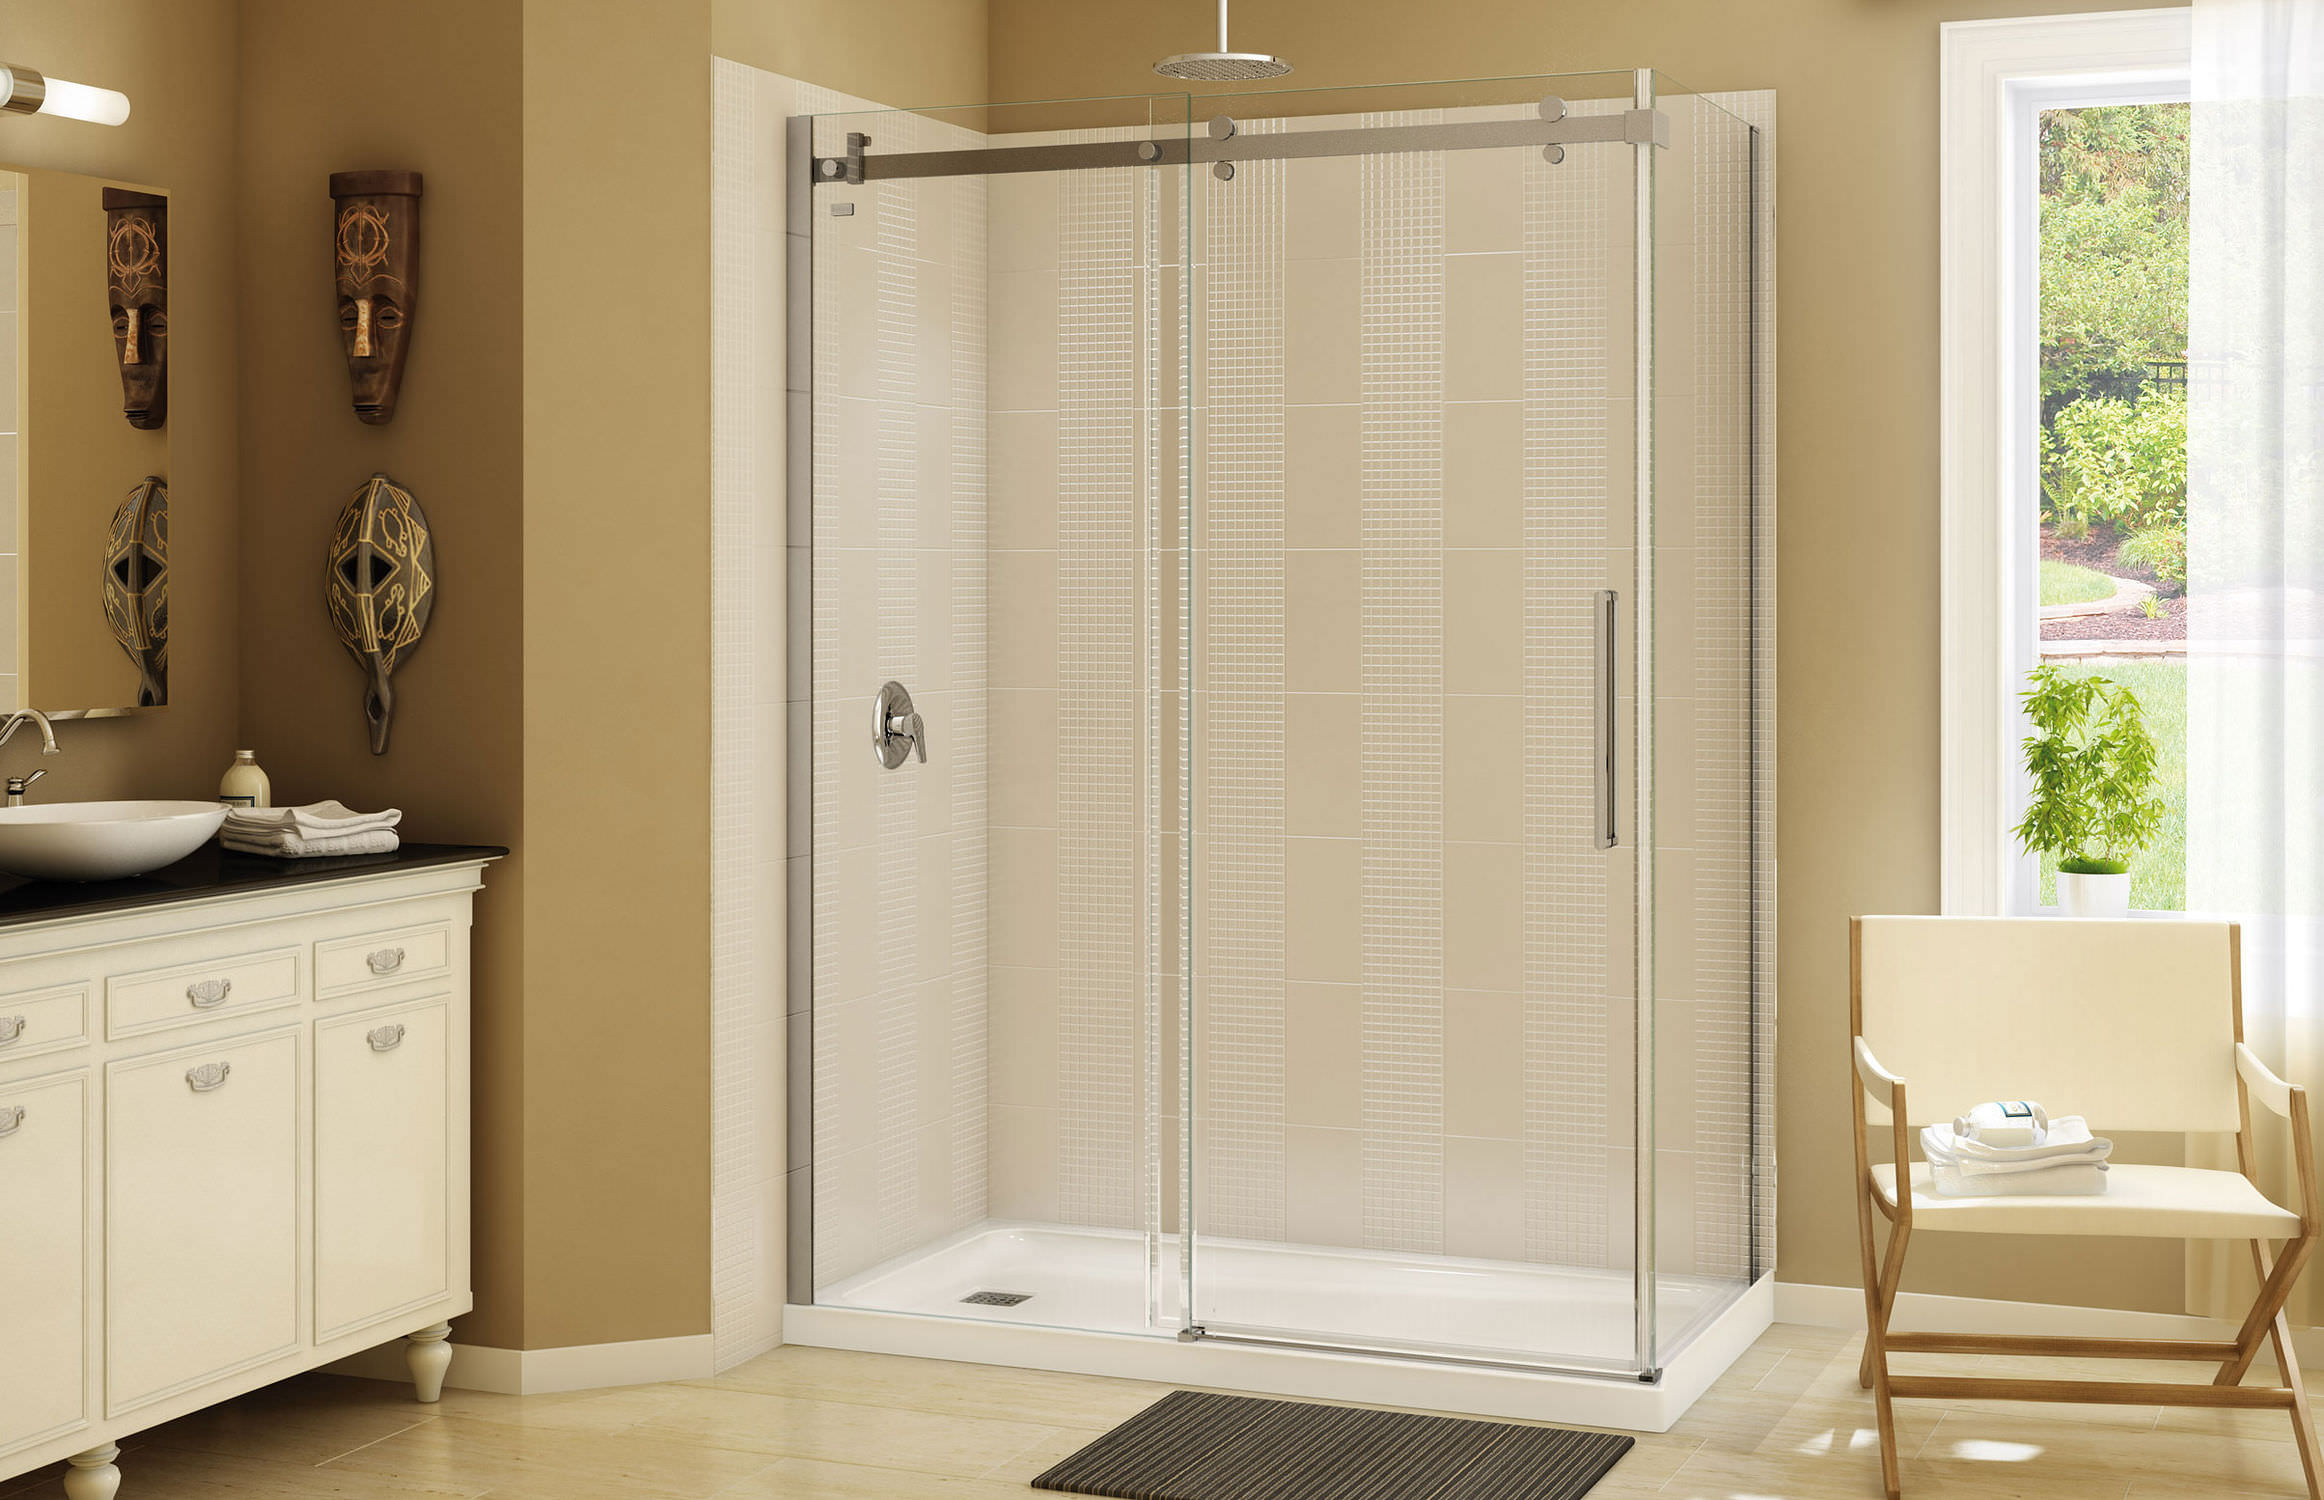 Rectangular shower base / acrylic - OLYMPIA SQUARE 60 - MAAX bathroom